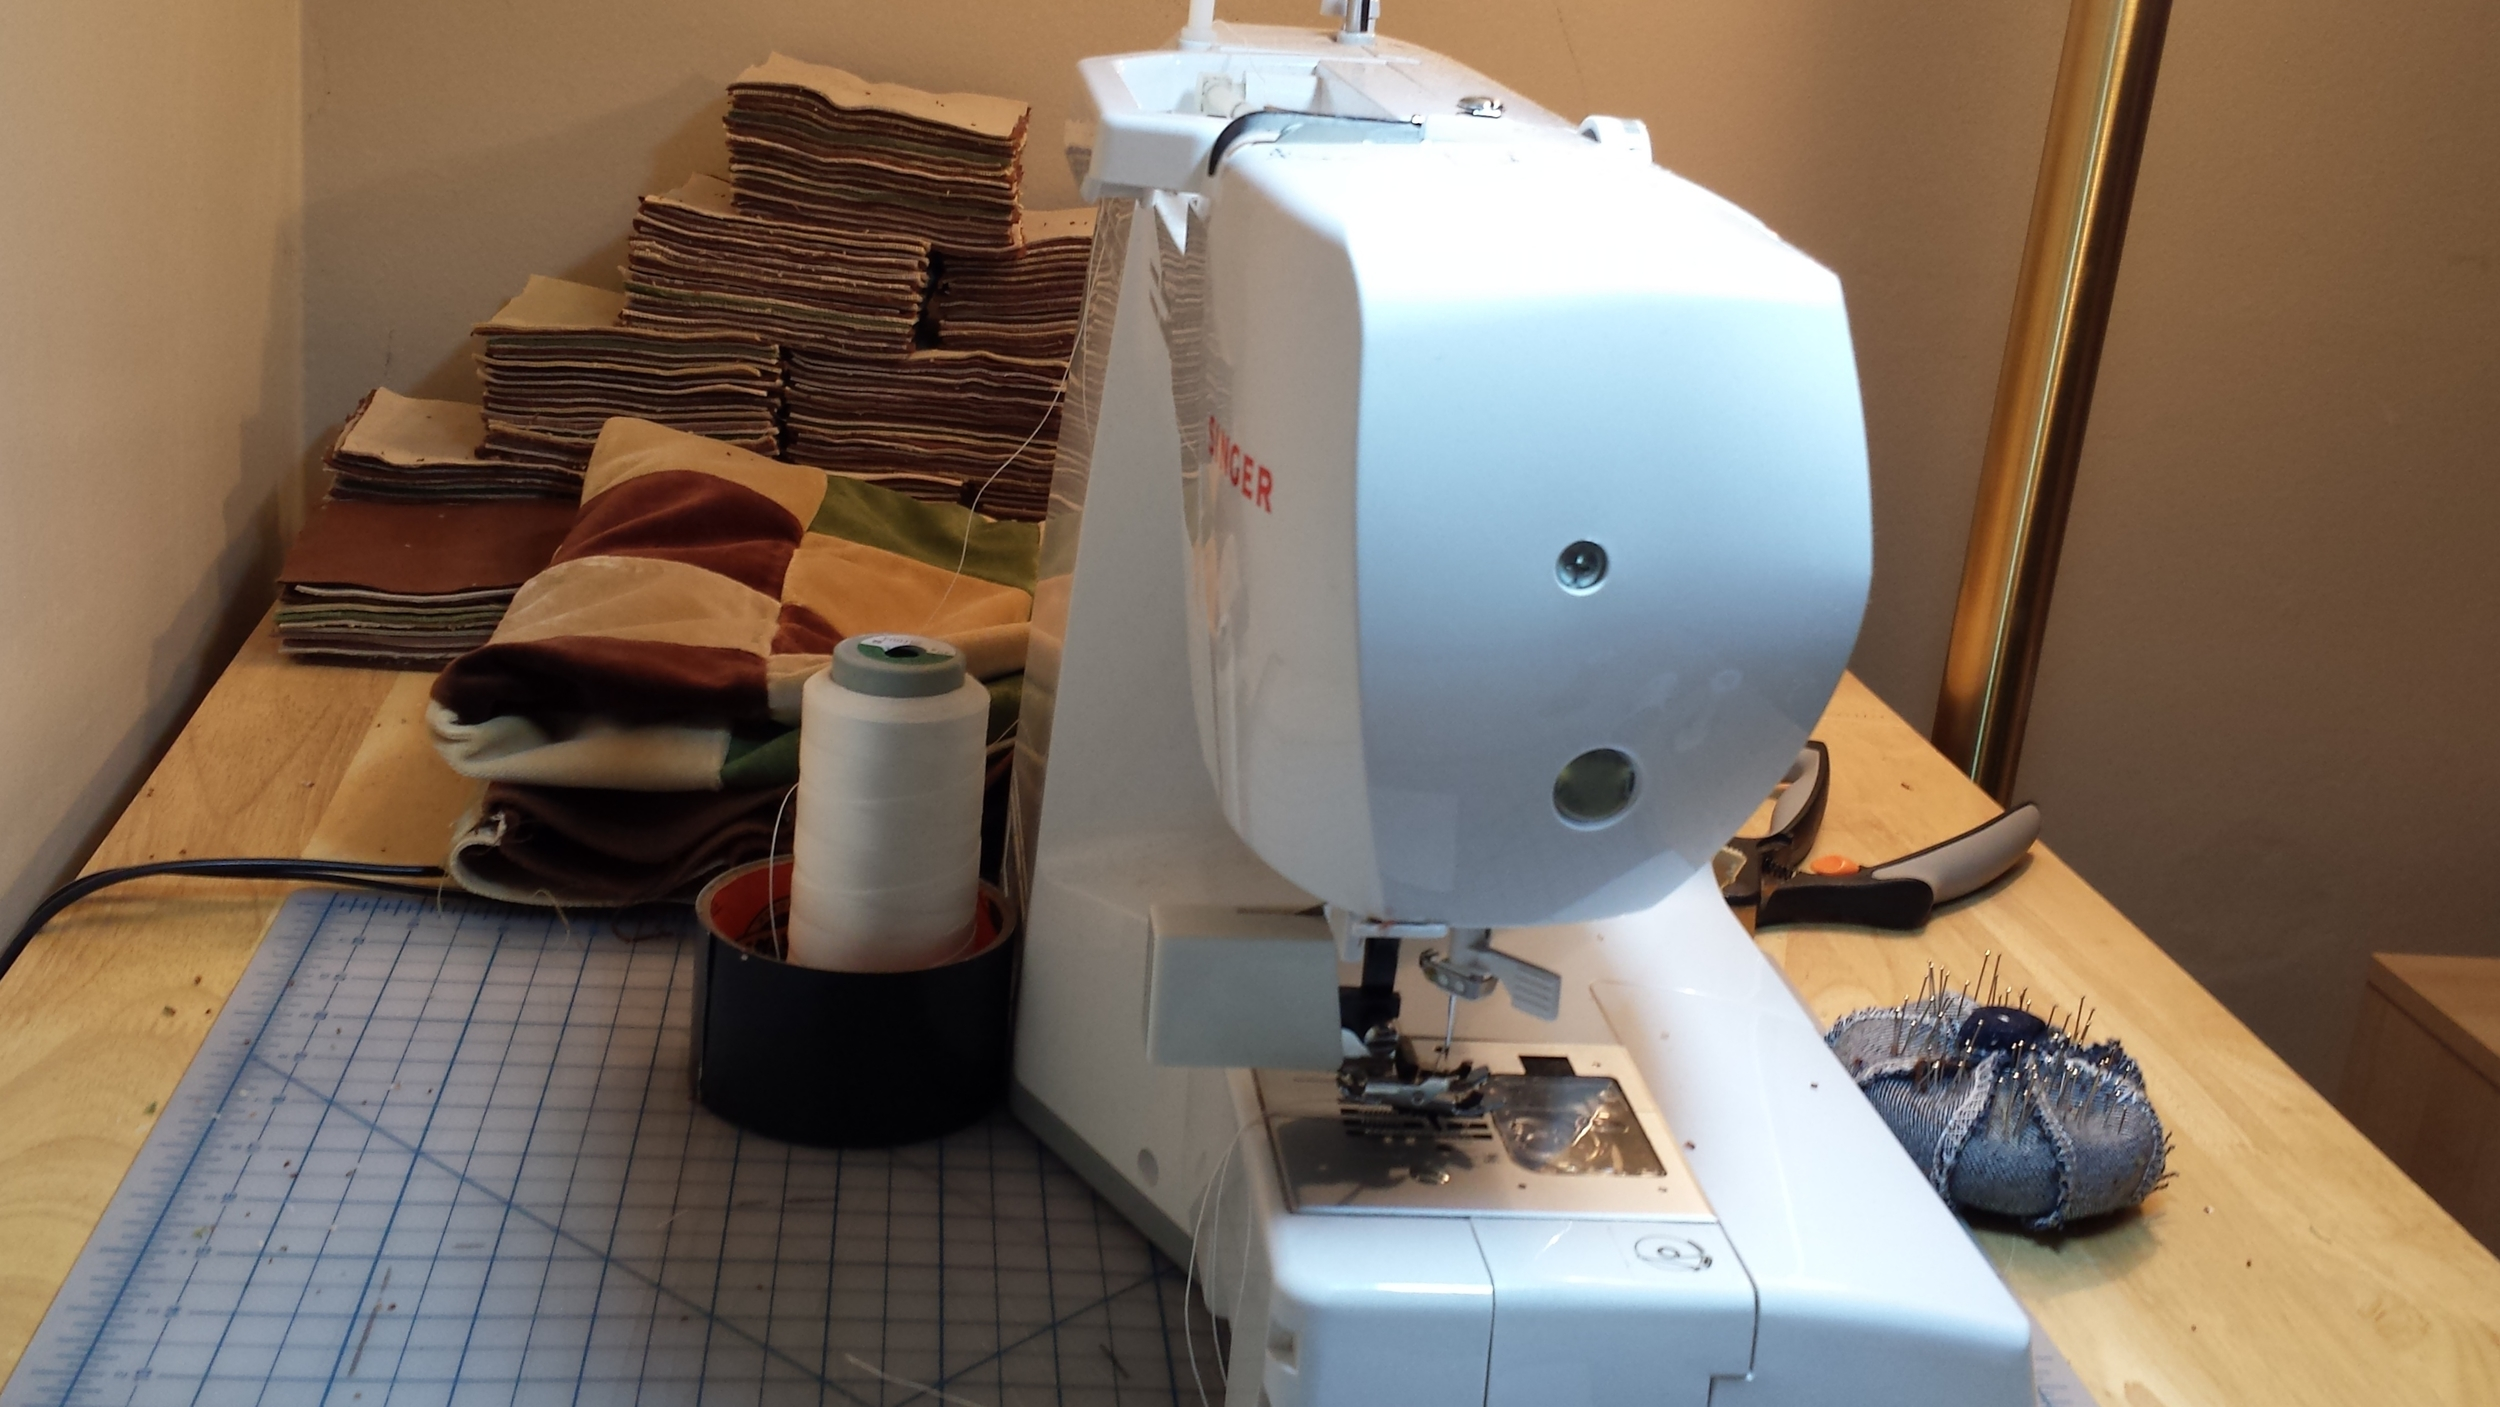 cone-thread-setup-for-sewing-machine.jpg